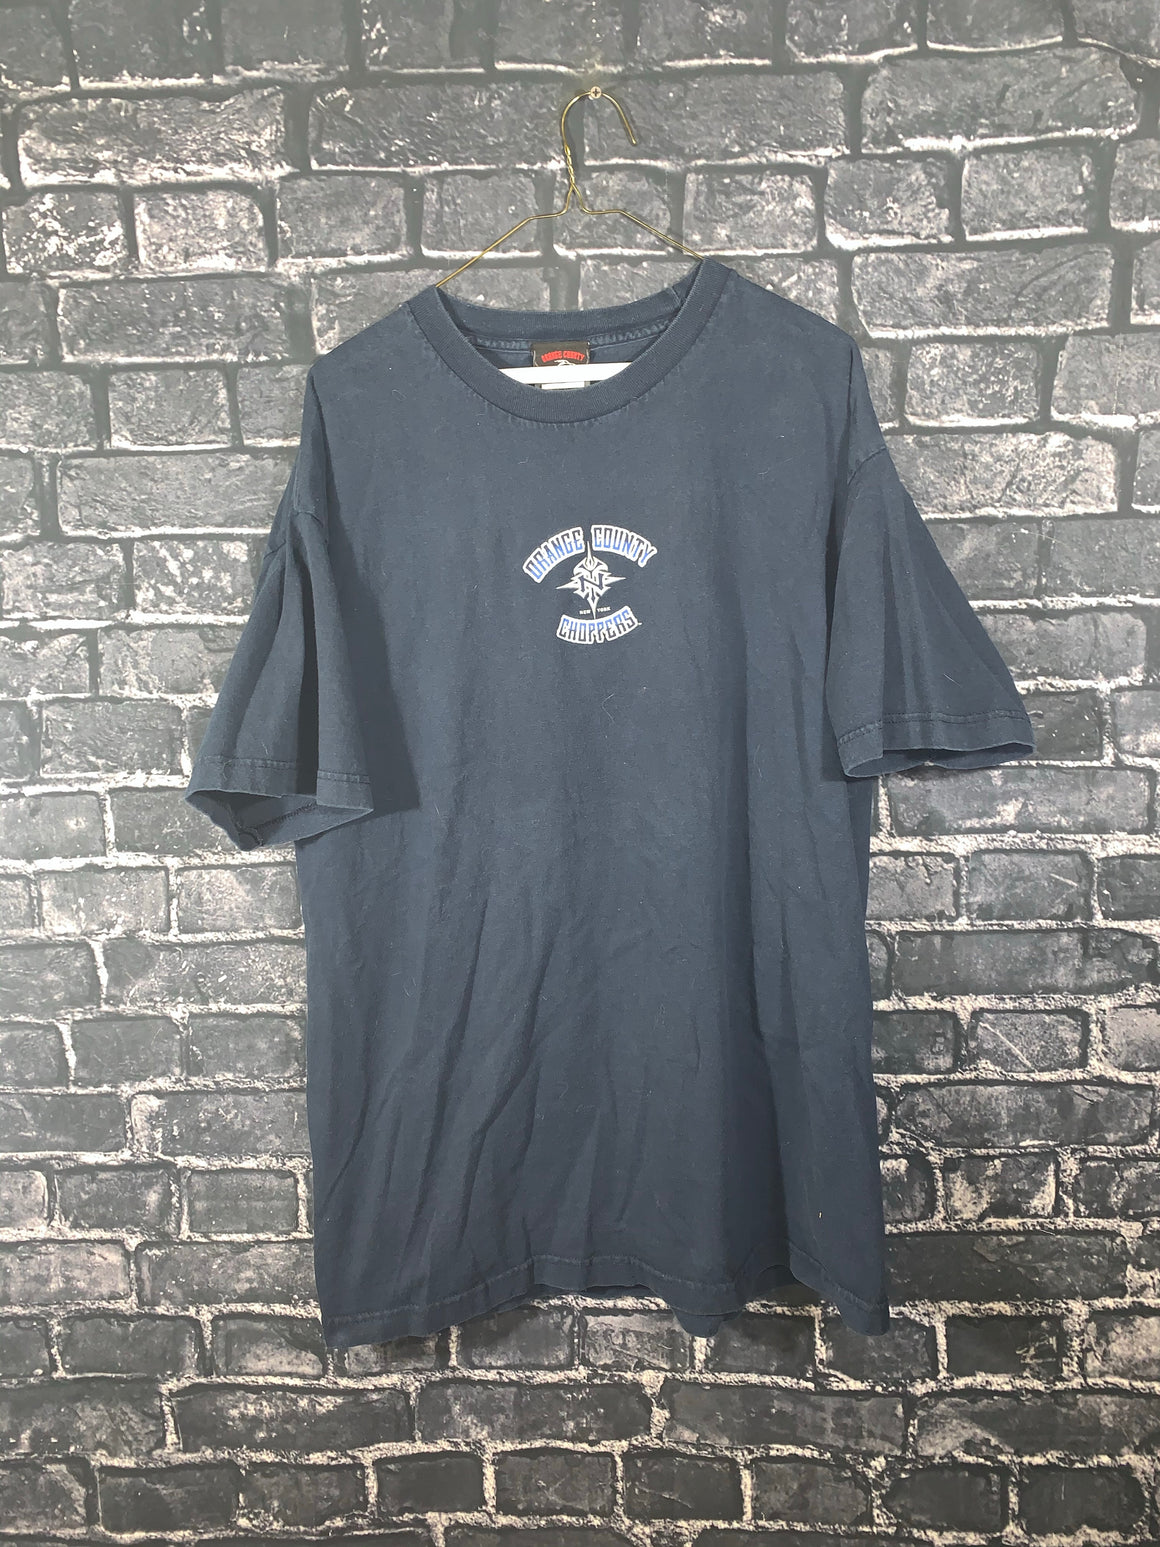 Navy Blue Orange County Choppers Graphic T-Shirt